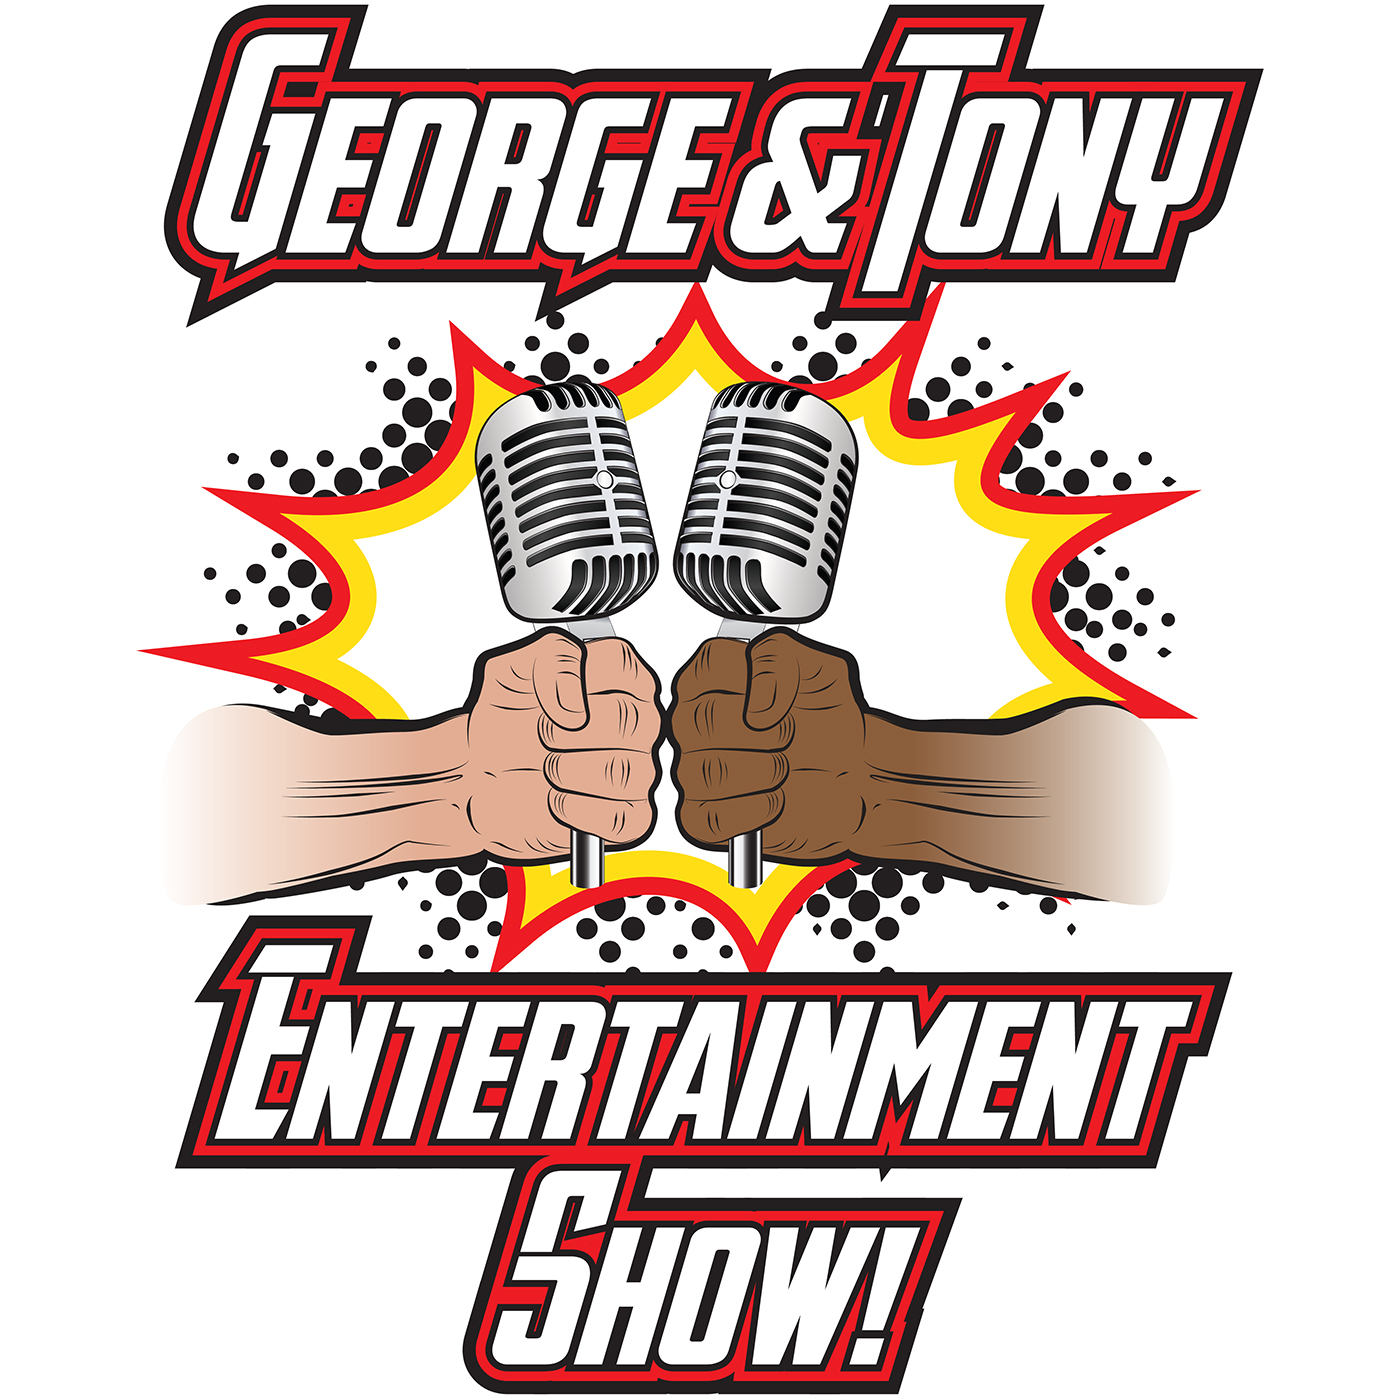 George and Tony Entertainment Show #106